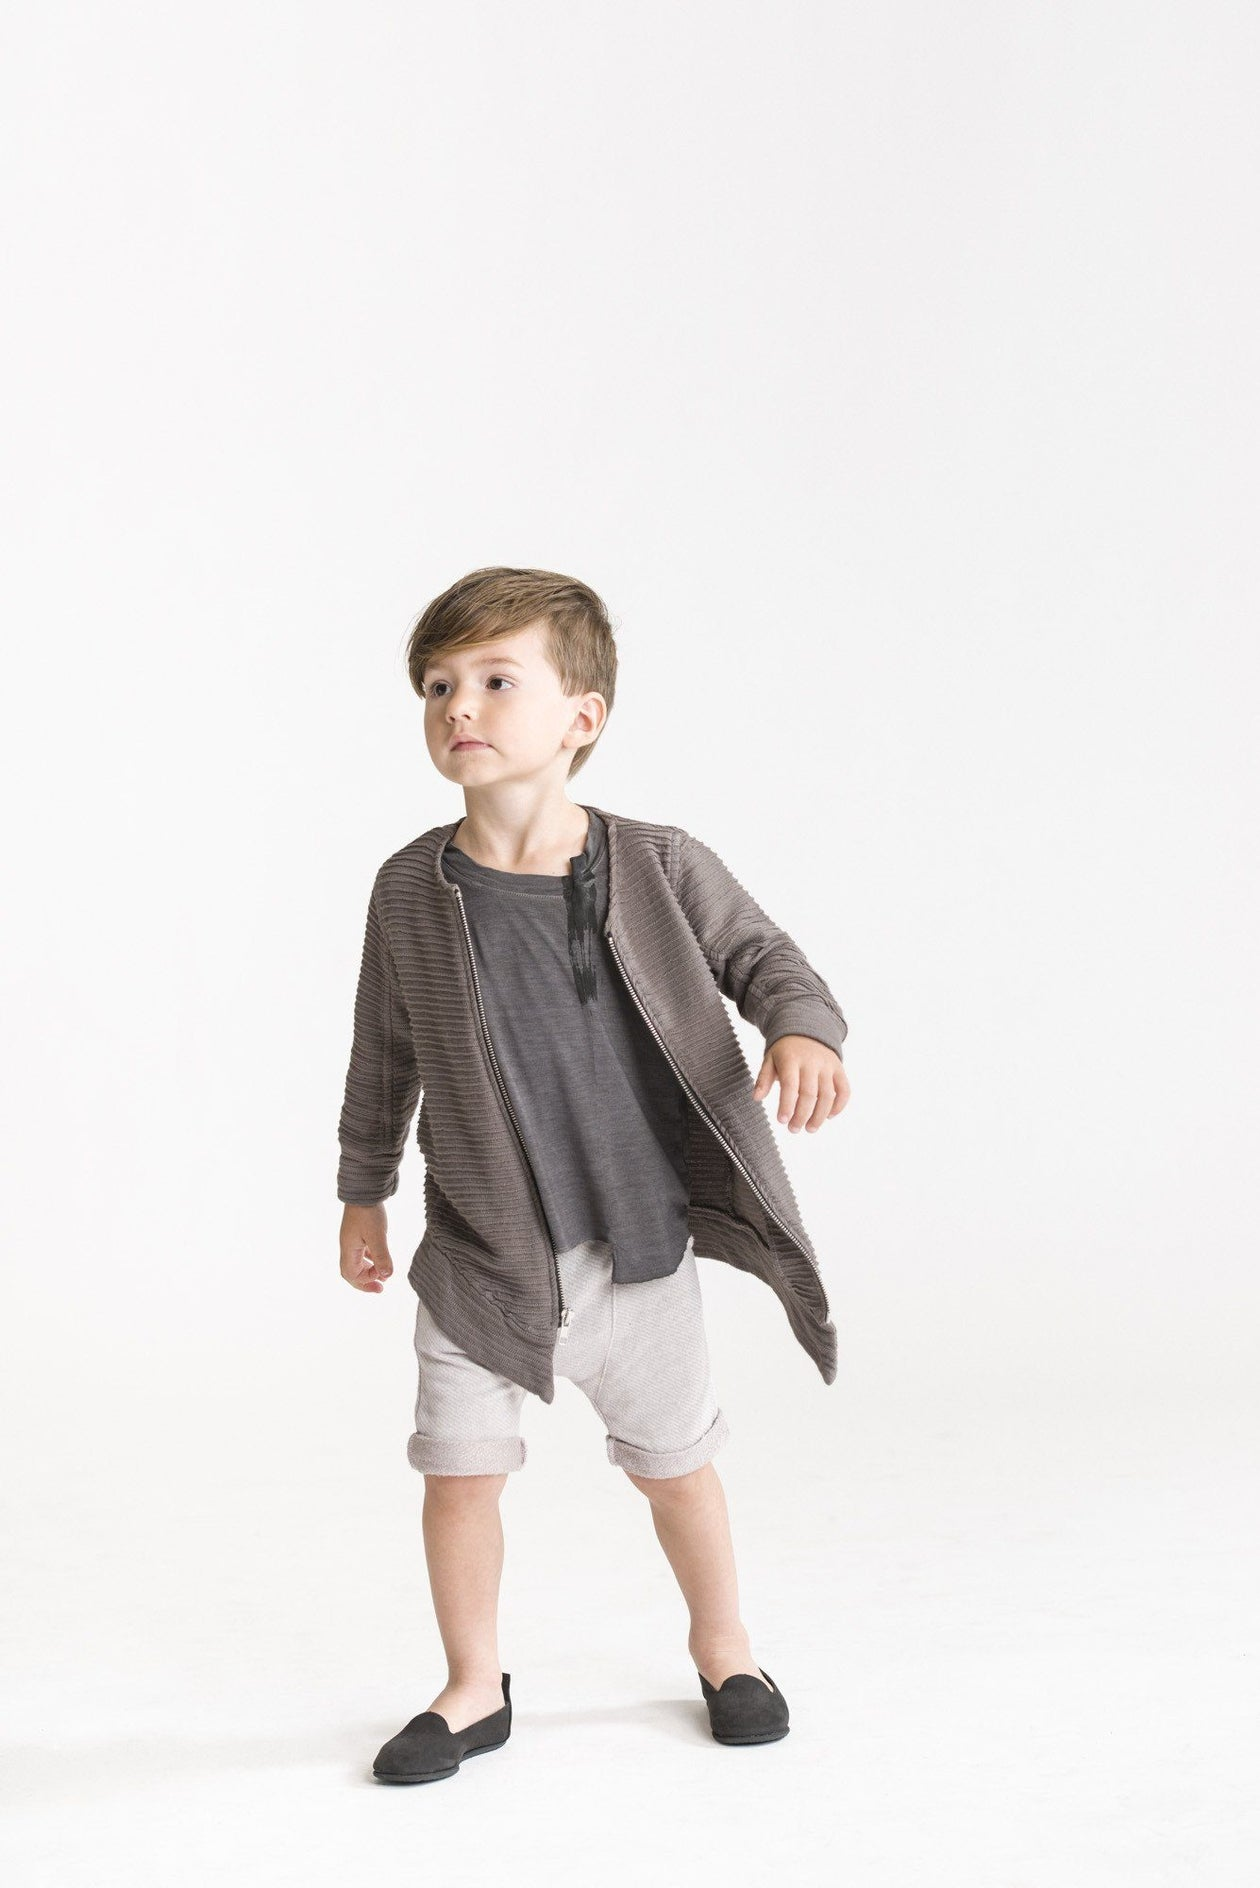 Kids Asymmetrical Shorts in Terry by Omamimini